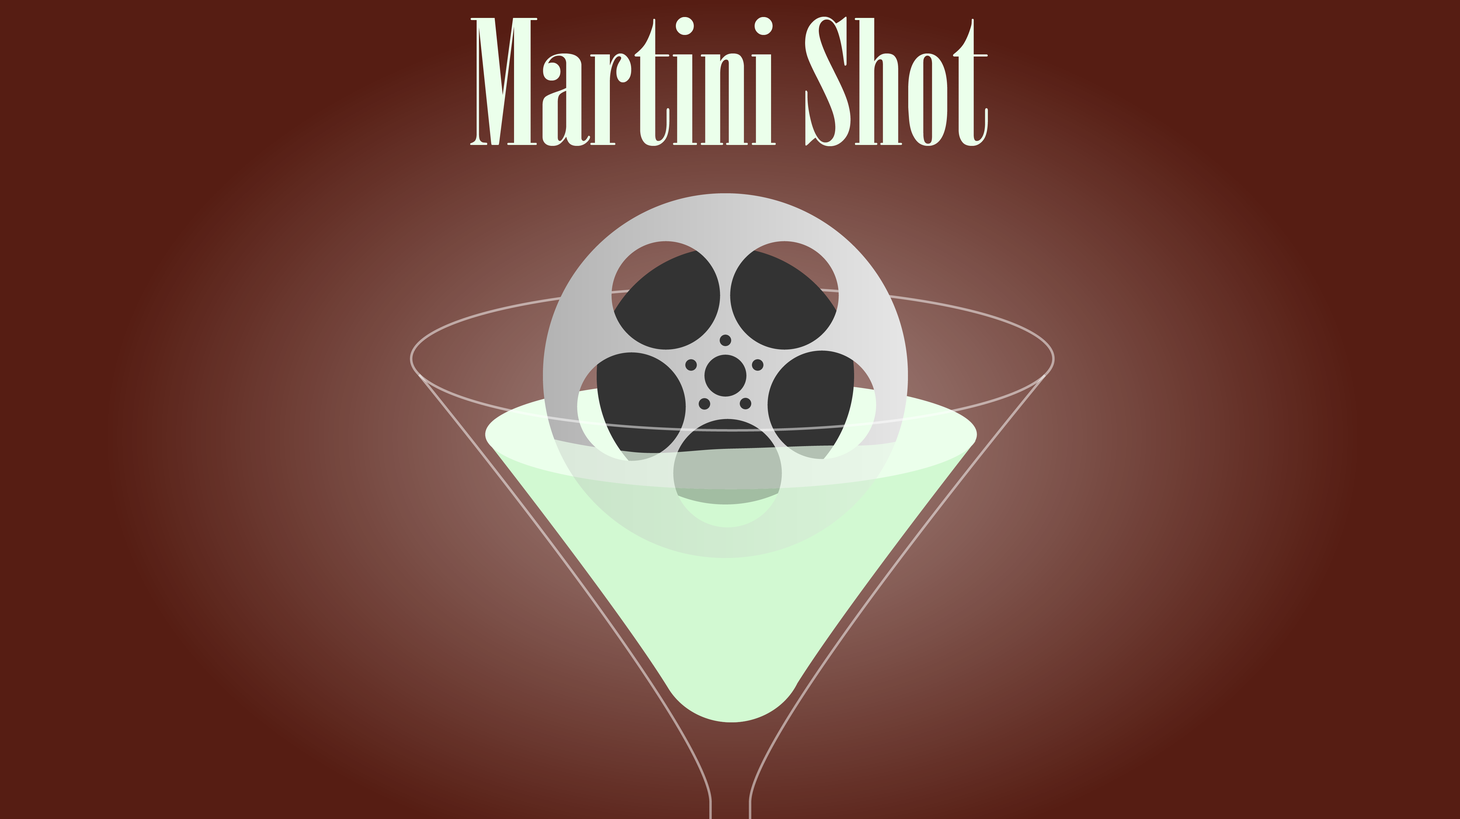 This is Rob Long and on today's Martini Shot I actually do deliver today's Martini Shot. I've been gone for a bit. Please tell me you noticed. You did, right?